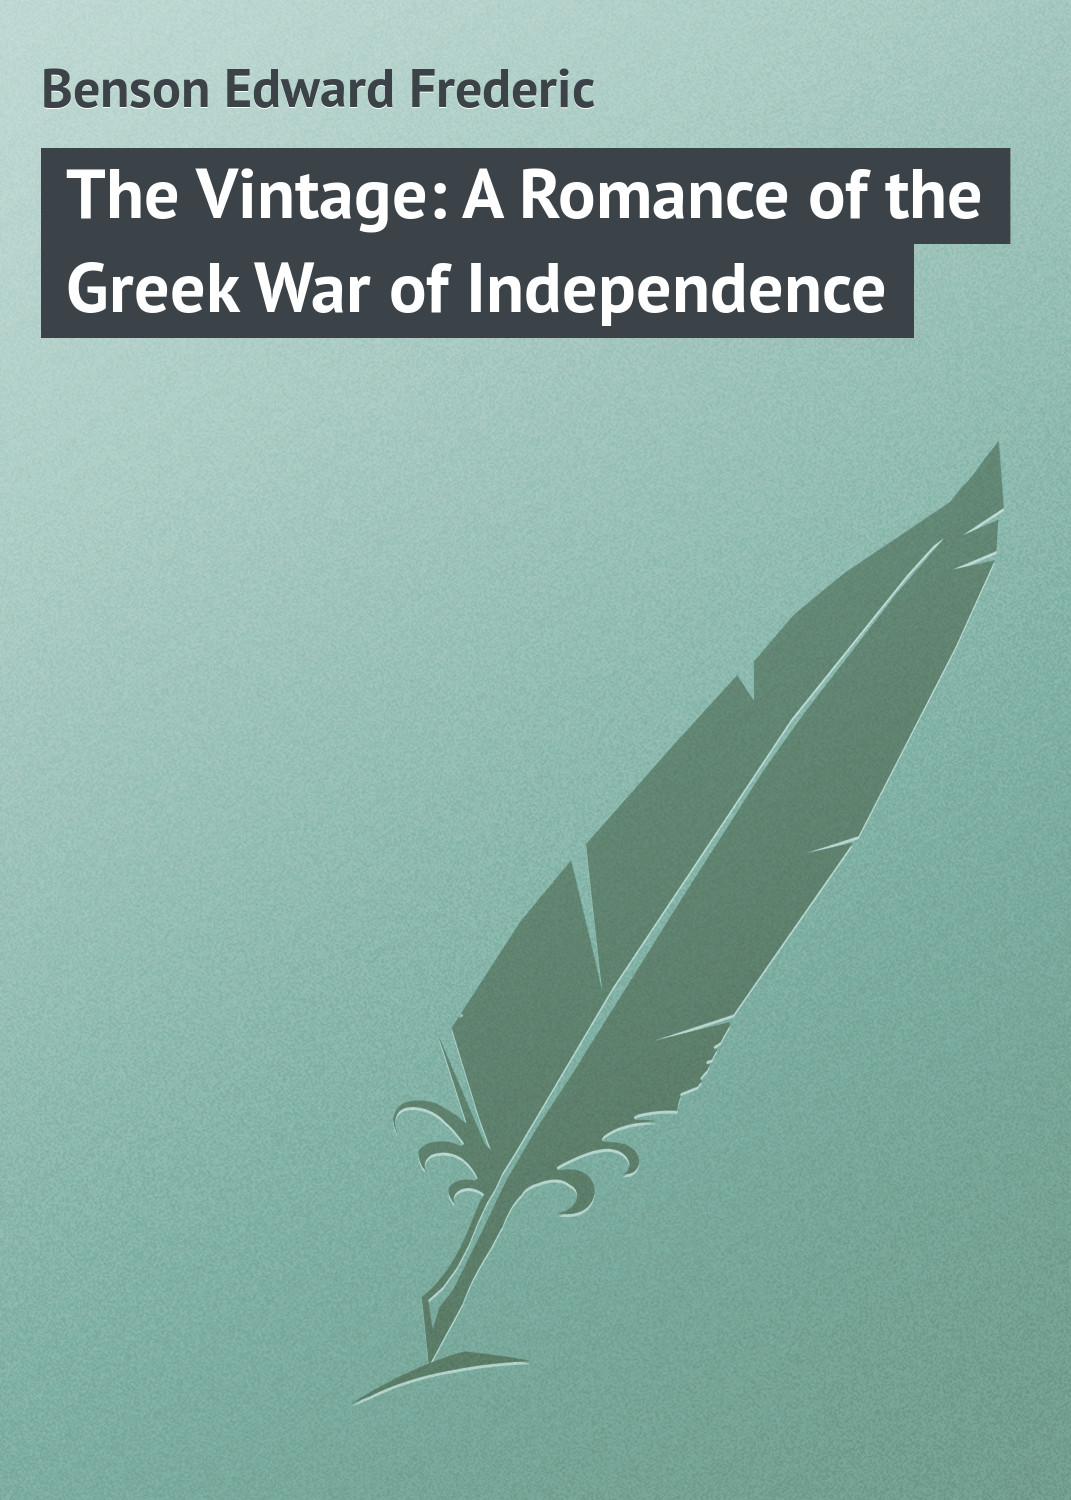 Benson Edward Frederic The Vintage: A Romance of the Greek War of Independence independence day equador gifts